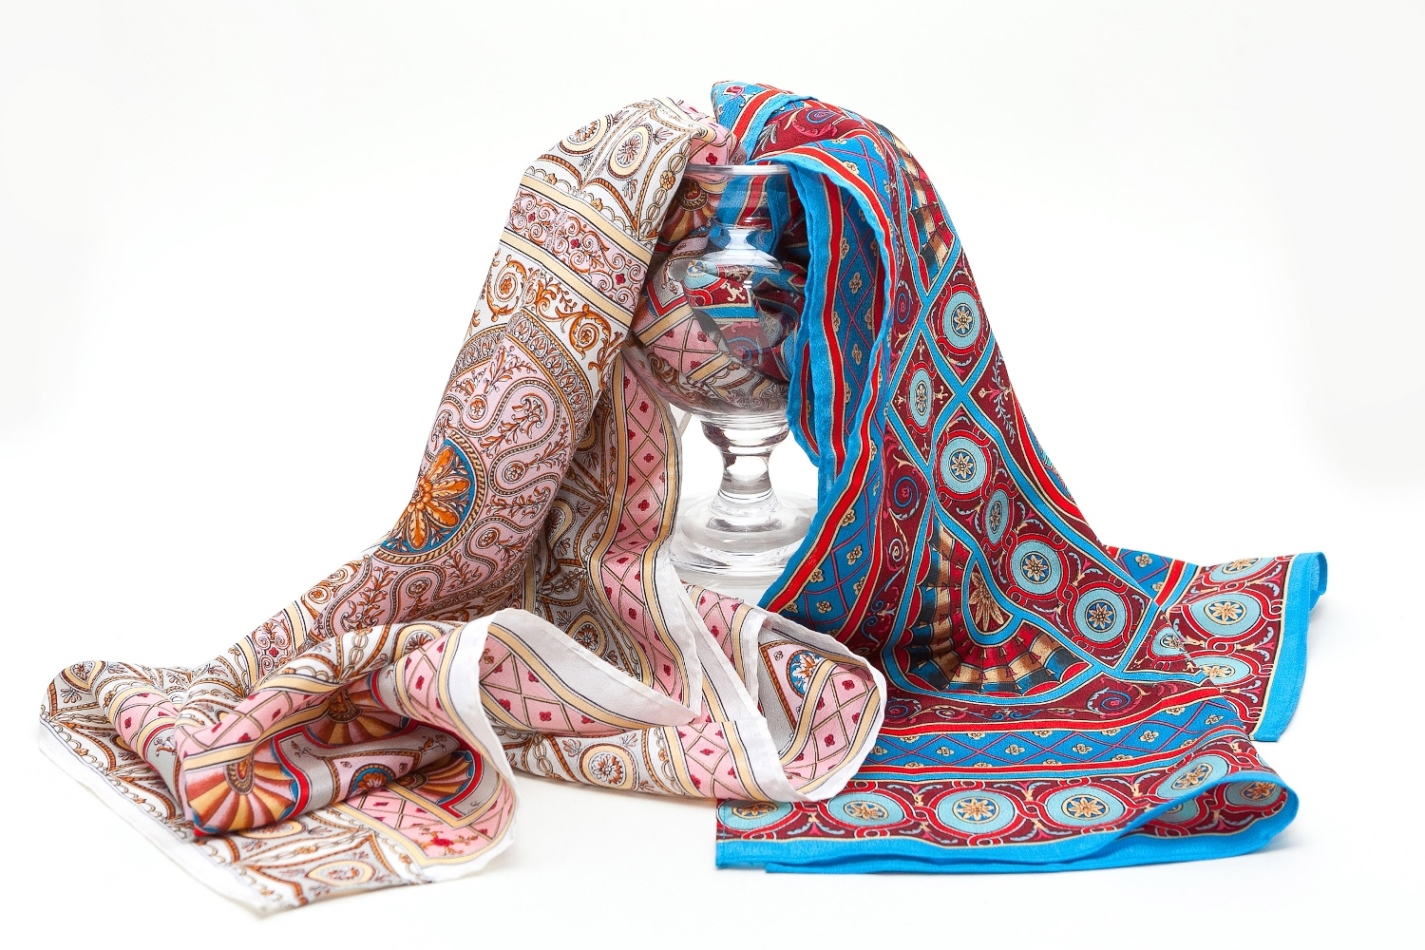 Fox and Chave scarves with designs taken from the Soane Museum Collection